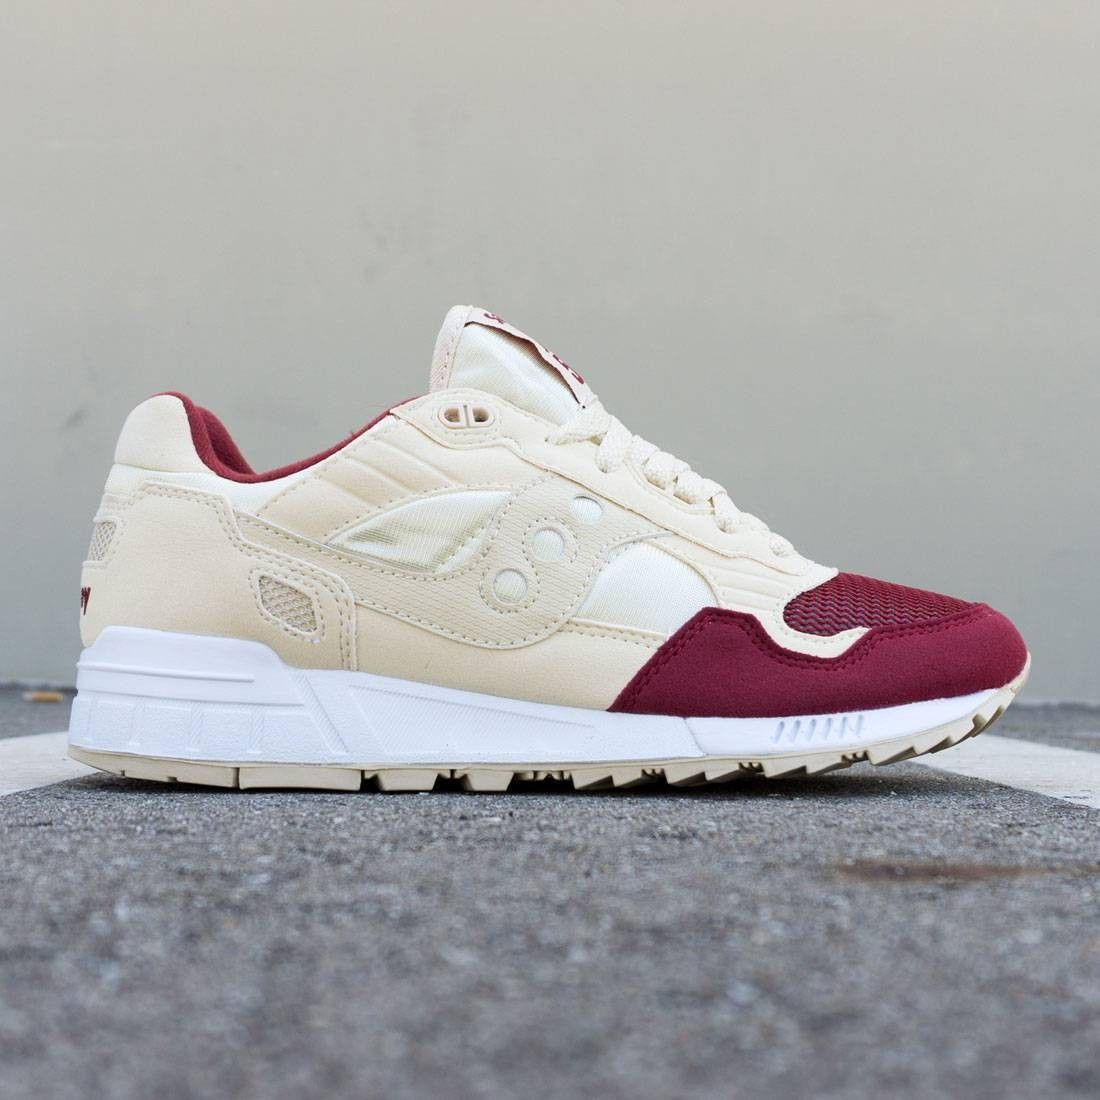 Saucony Shadow 5000 '10th Anniversary' | Saucony shoes